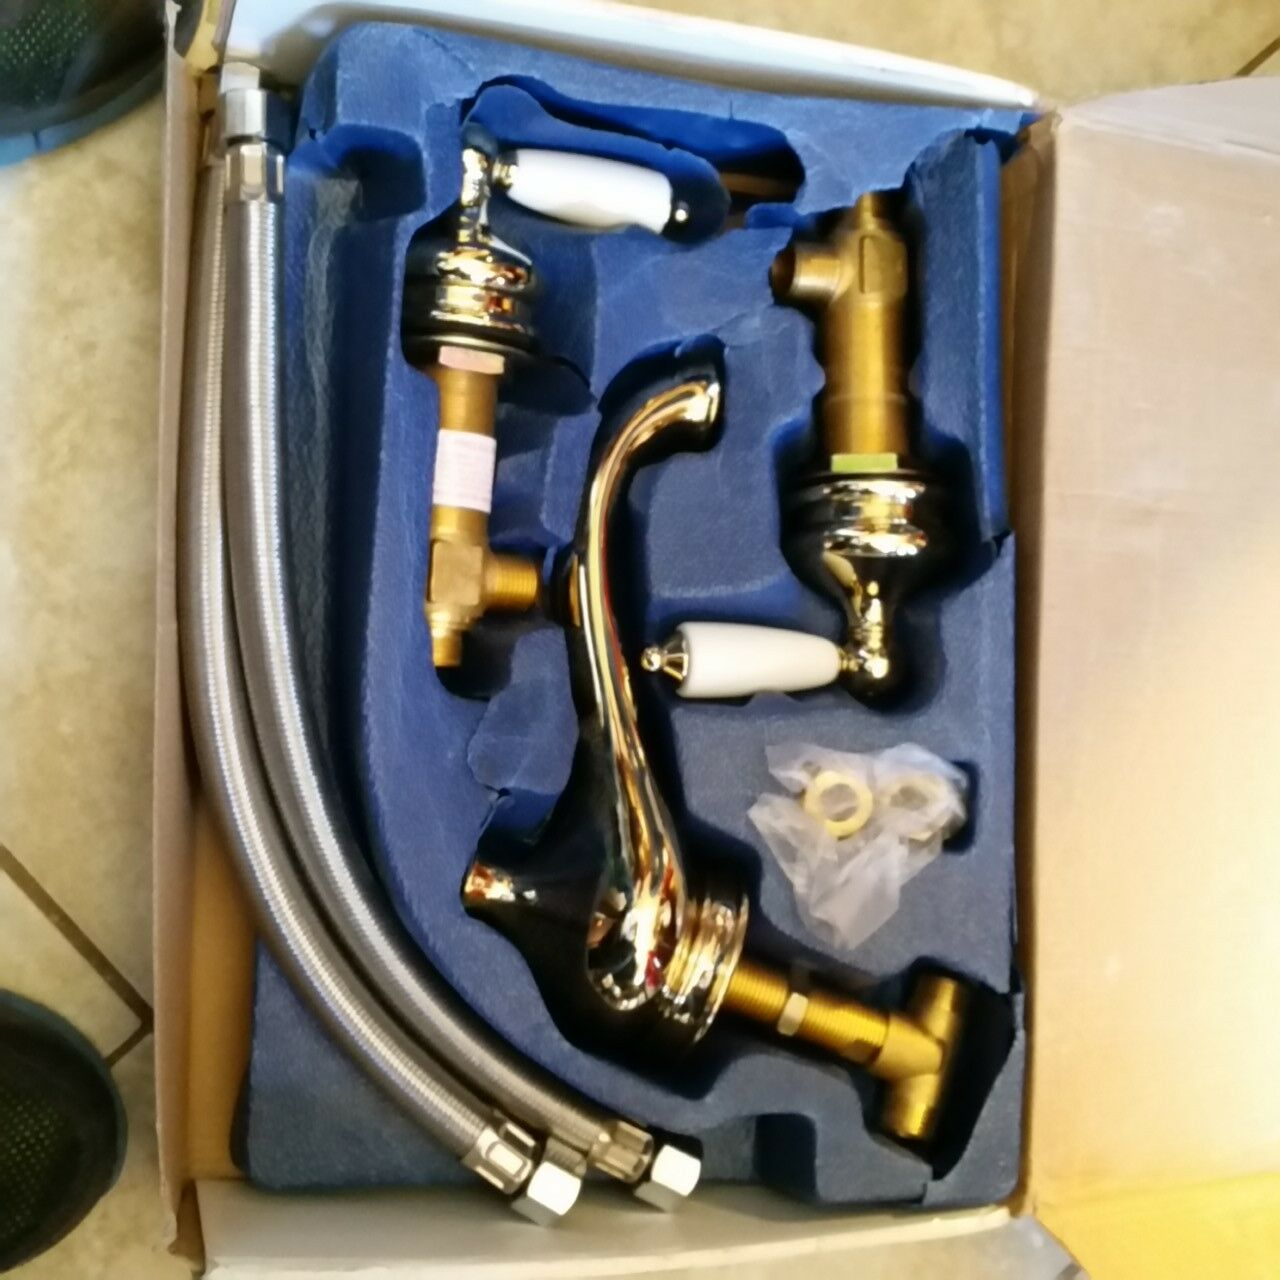 glacier bay roman tub faucet. New  other lowest price Glacier Bay 881 0002 Teapot Roman Tub Faucet Set in Polished Brass